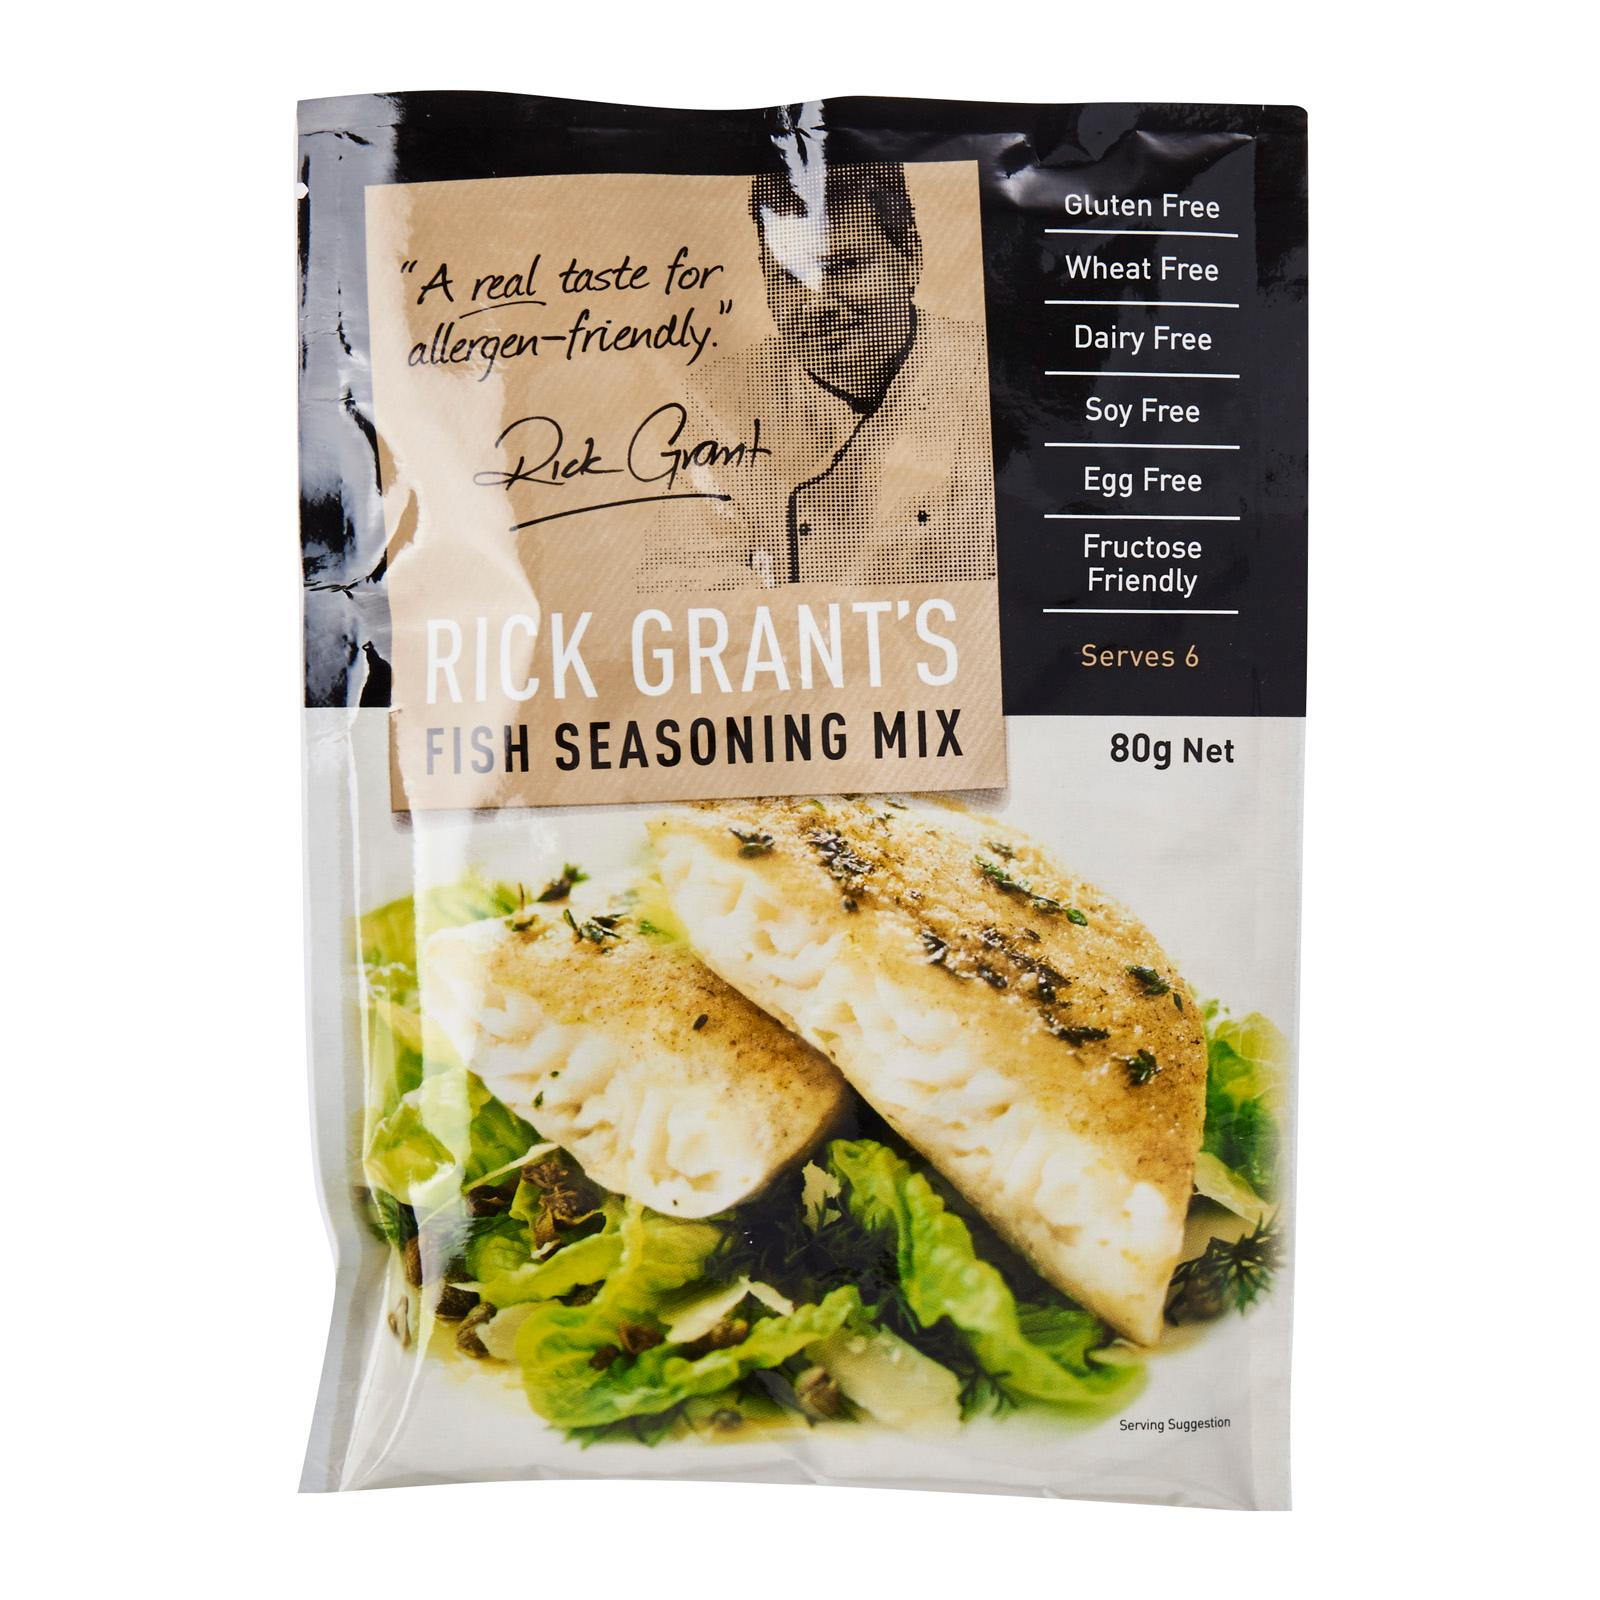 Rick Grant's Gluten Free Fish Seasoning Mix (80g)